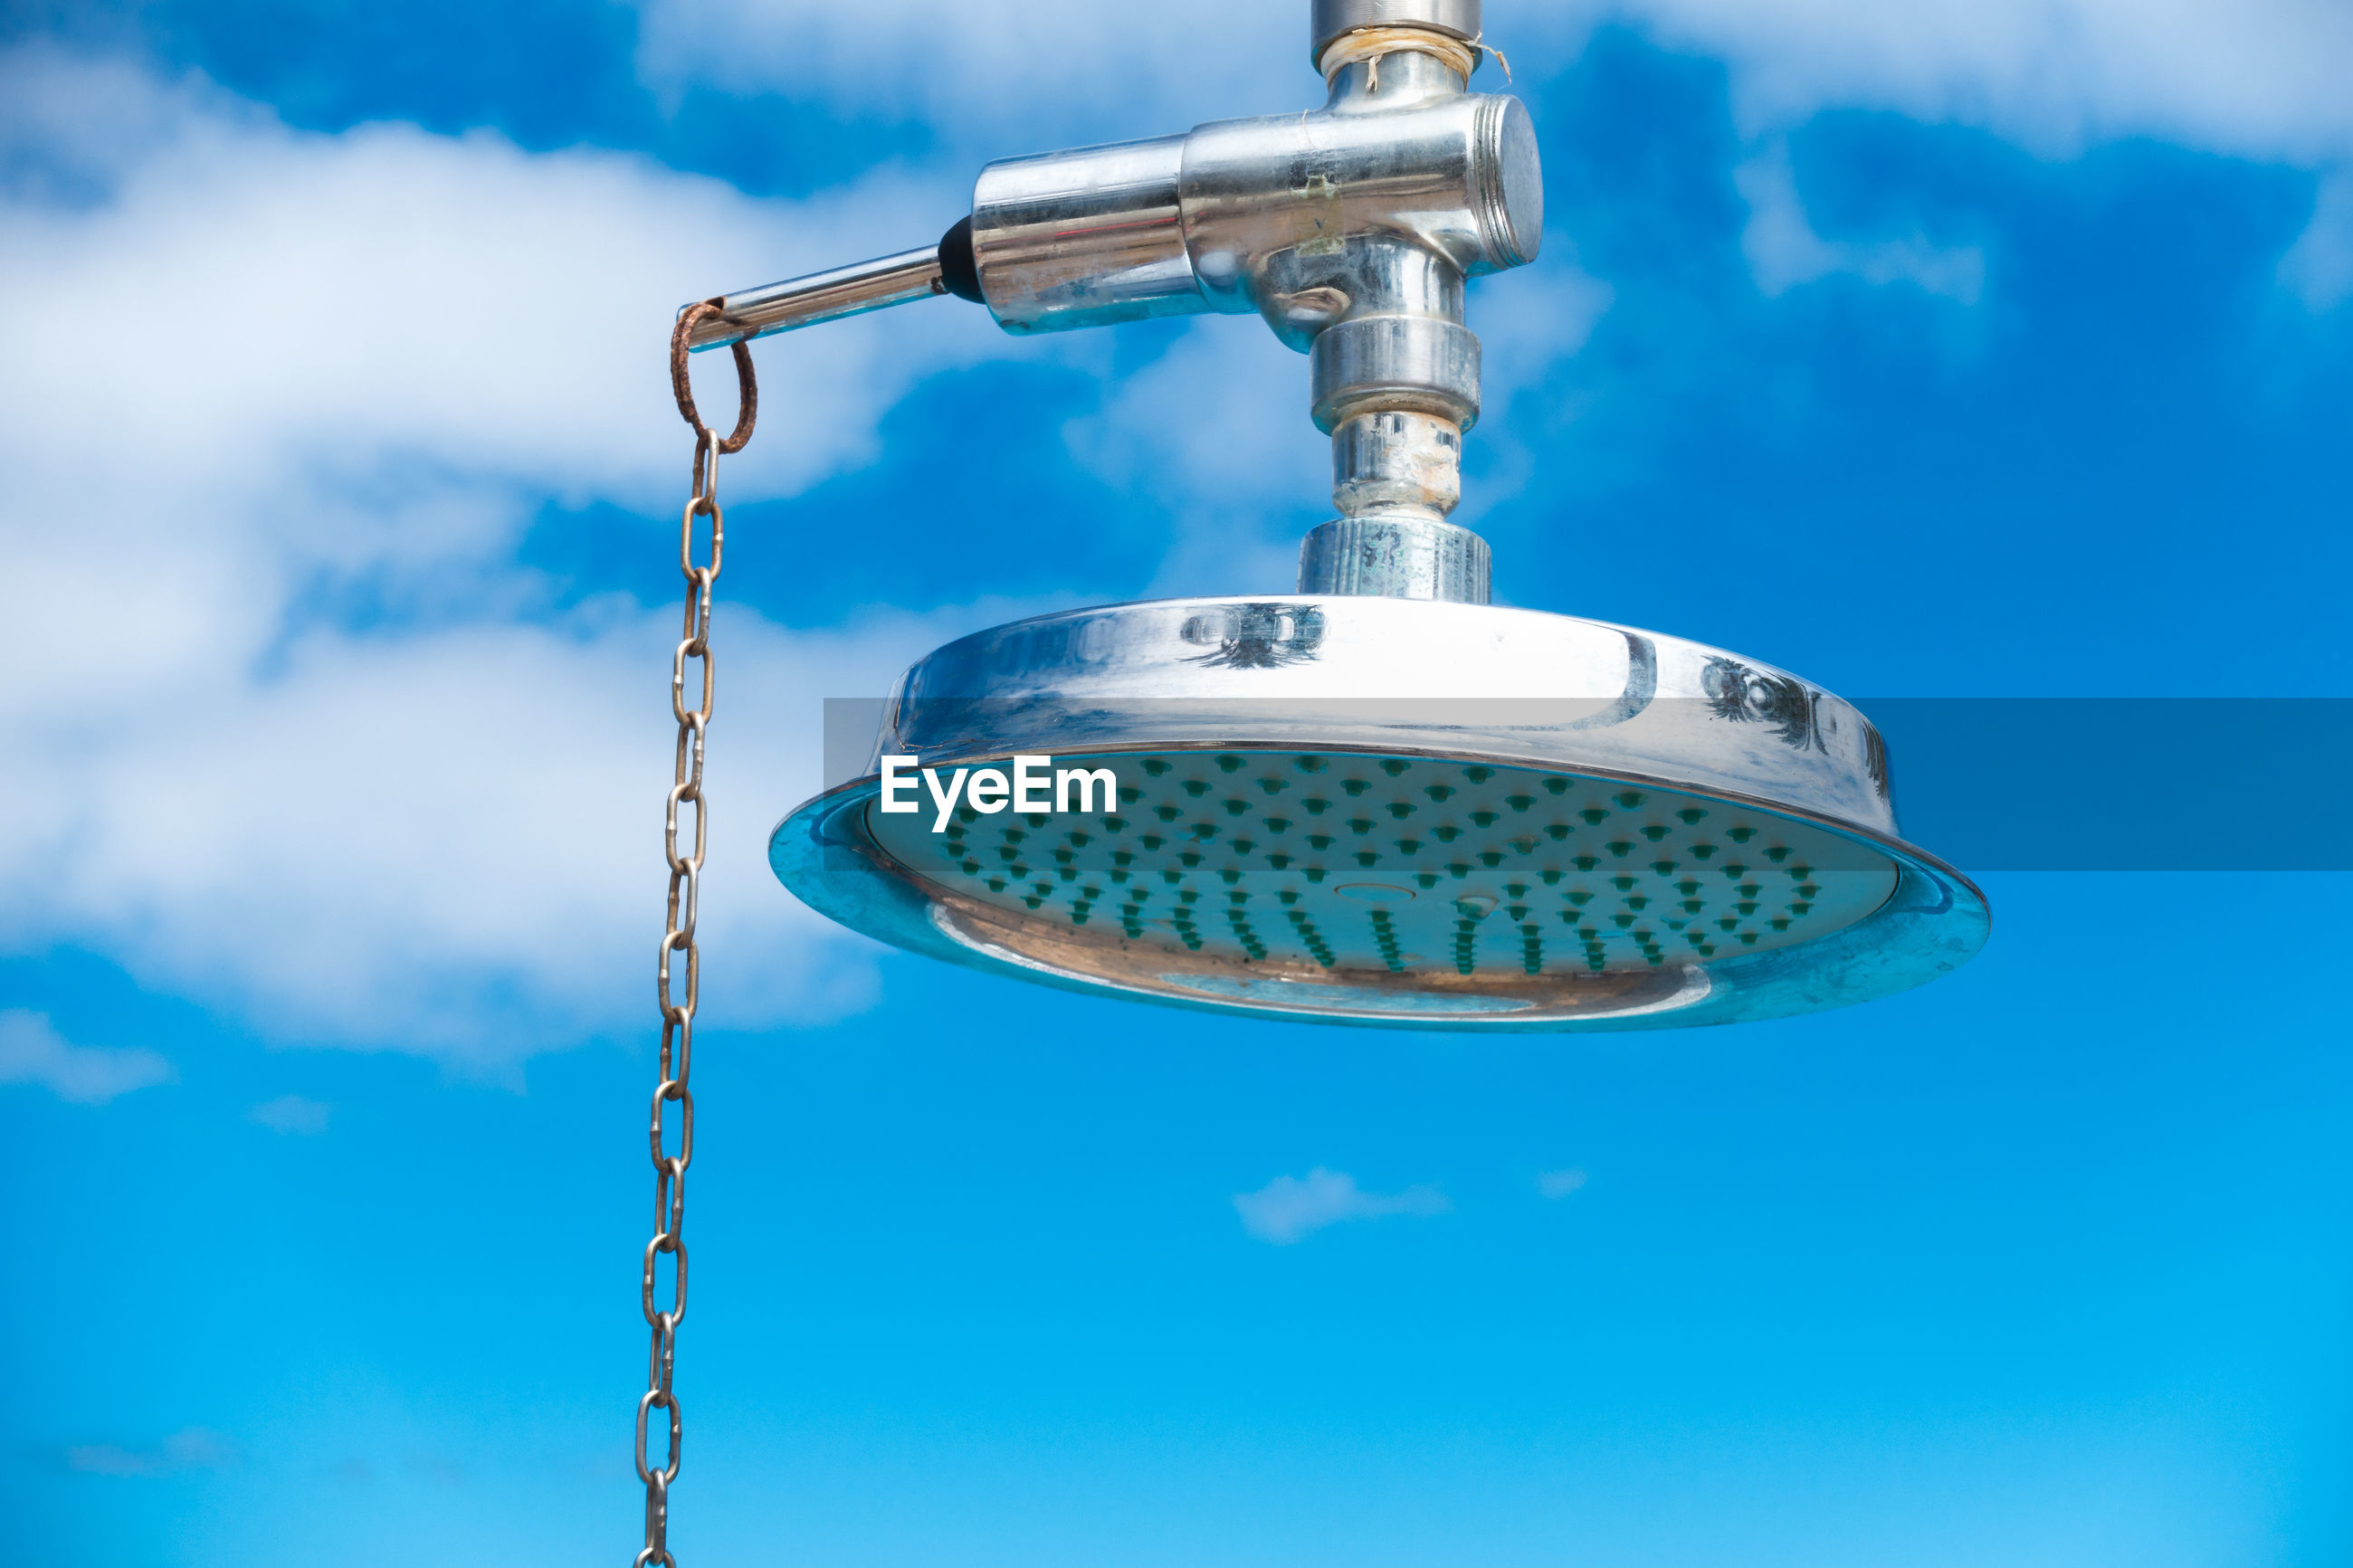 Low angle view of shower head against blue sky